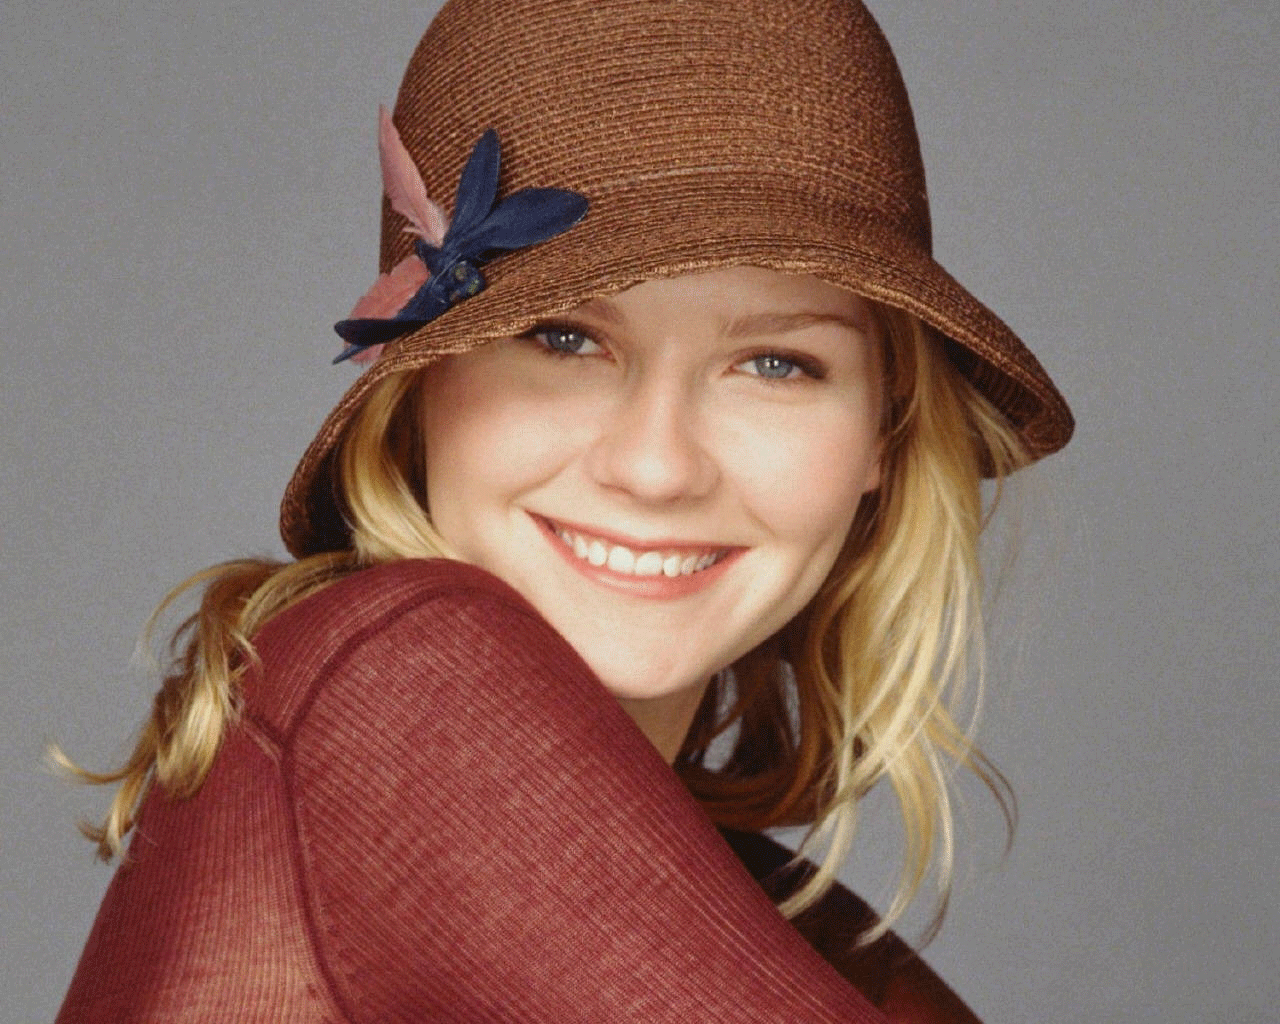 http://up.mandegarfun.ir/view/151137/kirsten-dunst-hollywood-actress.png